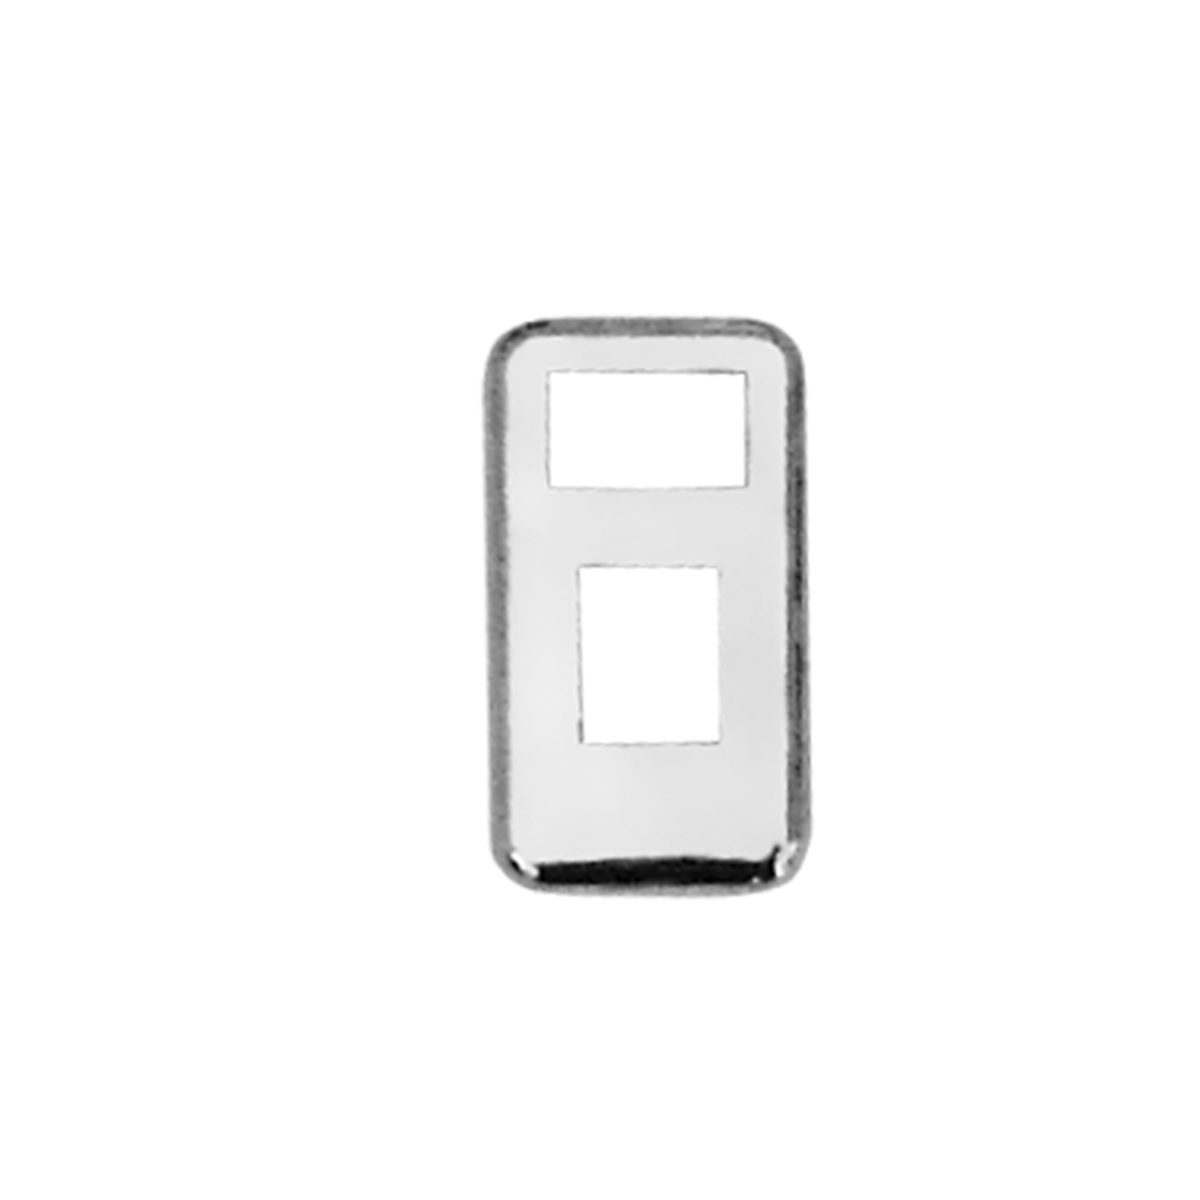 68943 Fuel Rocker Switch Cover for Western Star